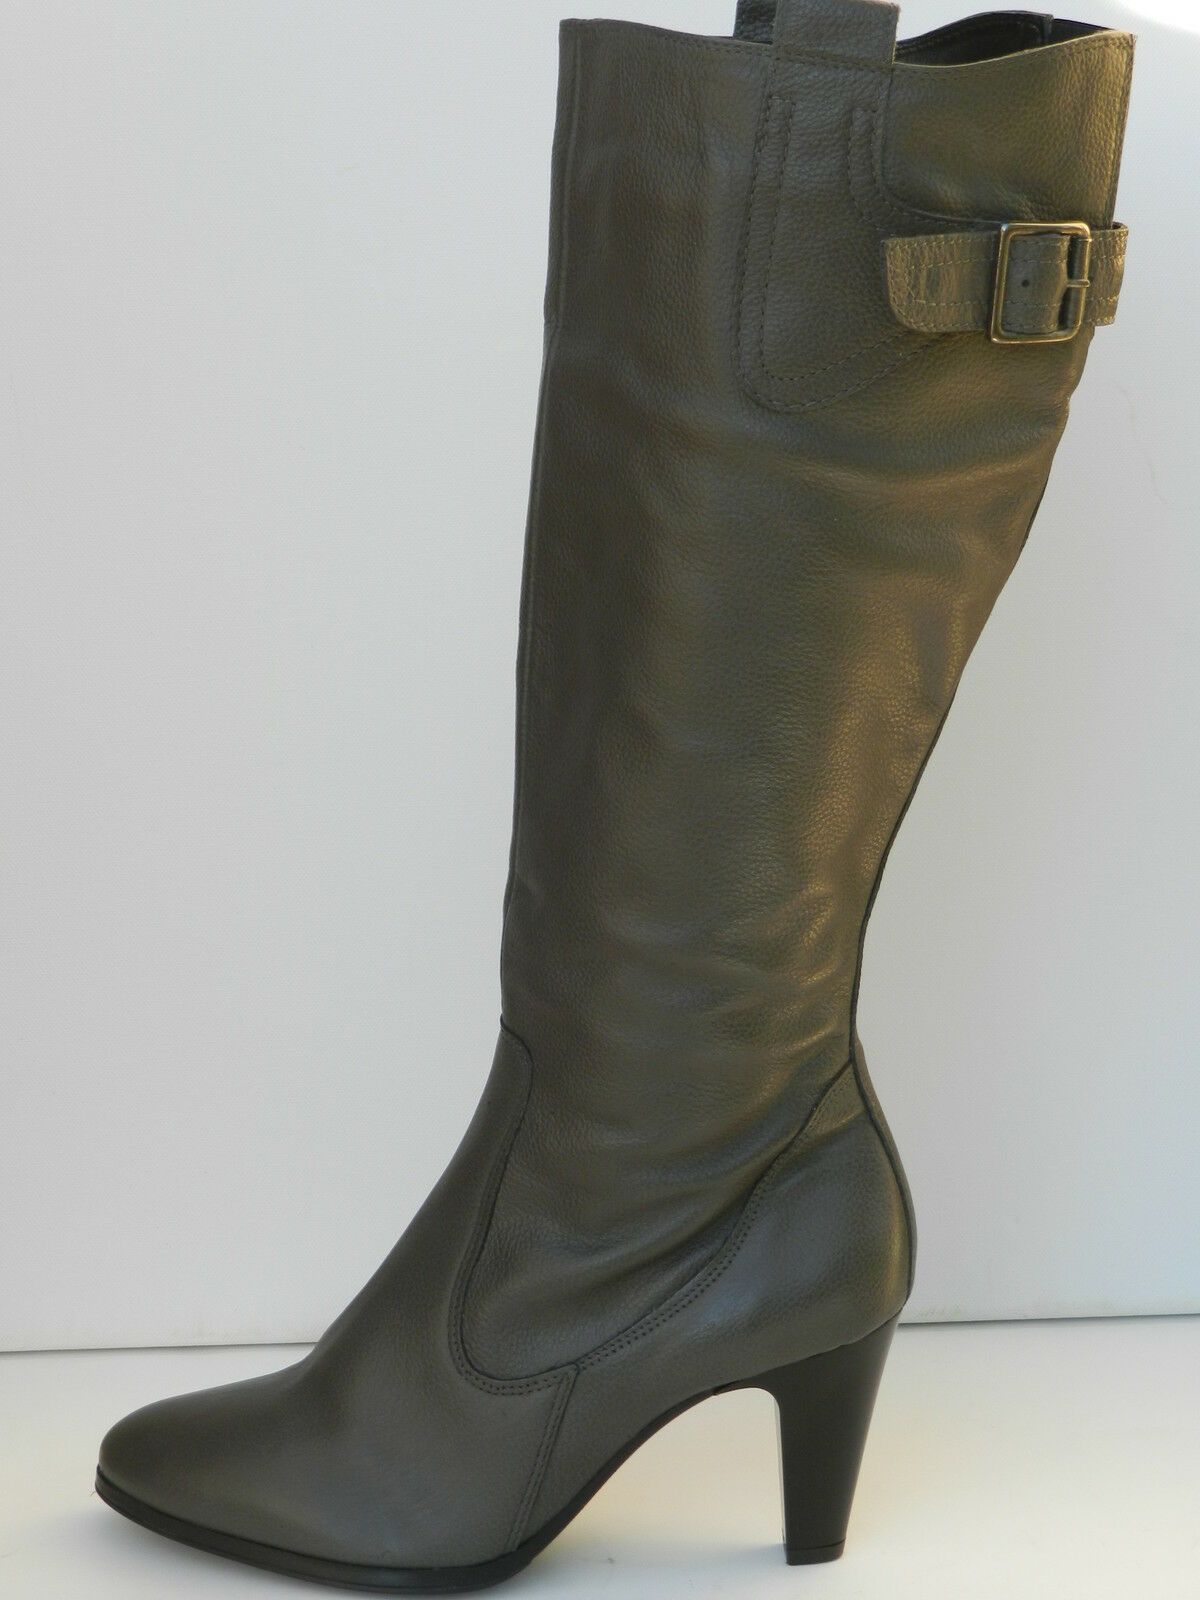 M&S Chaussures Femme 40,5 Bottes Marks and Spencer Tall bottes Montantes UK7 Neuf